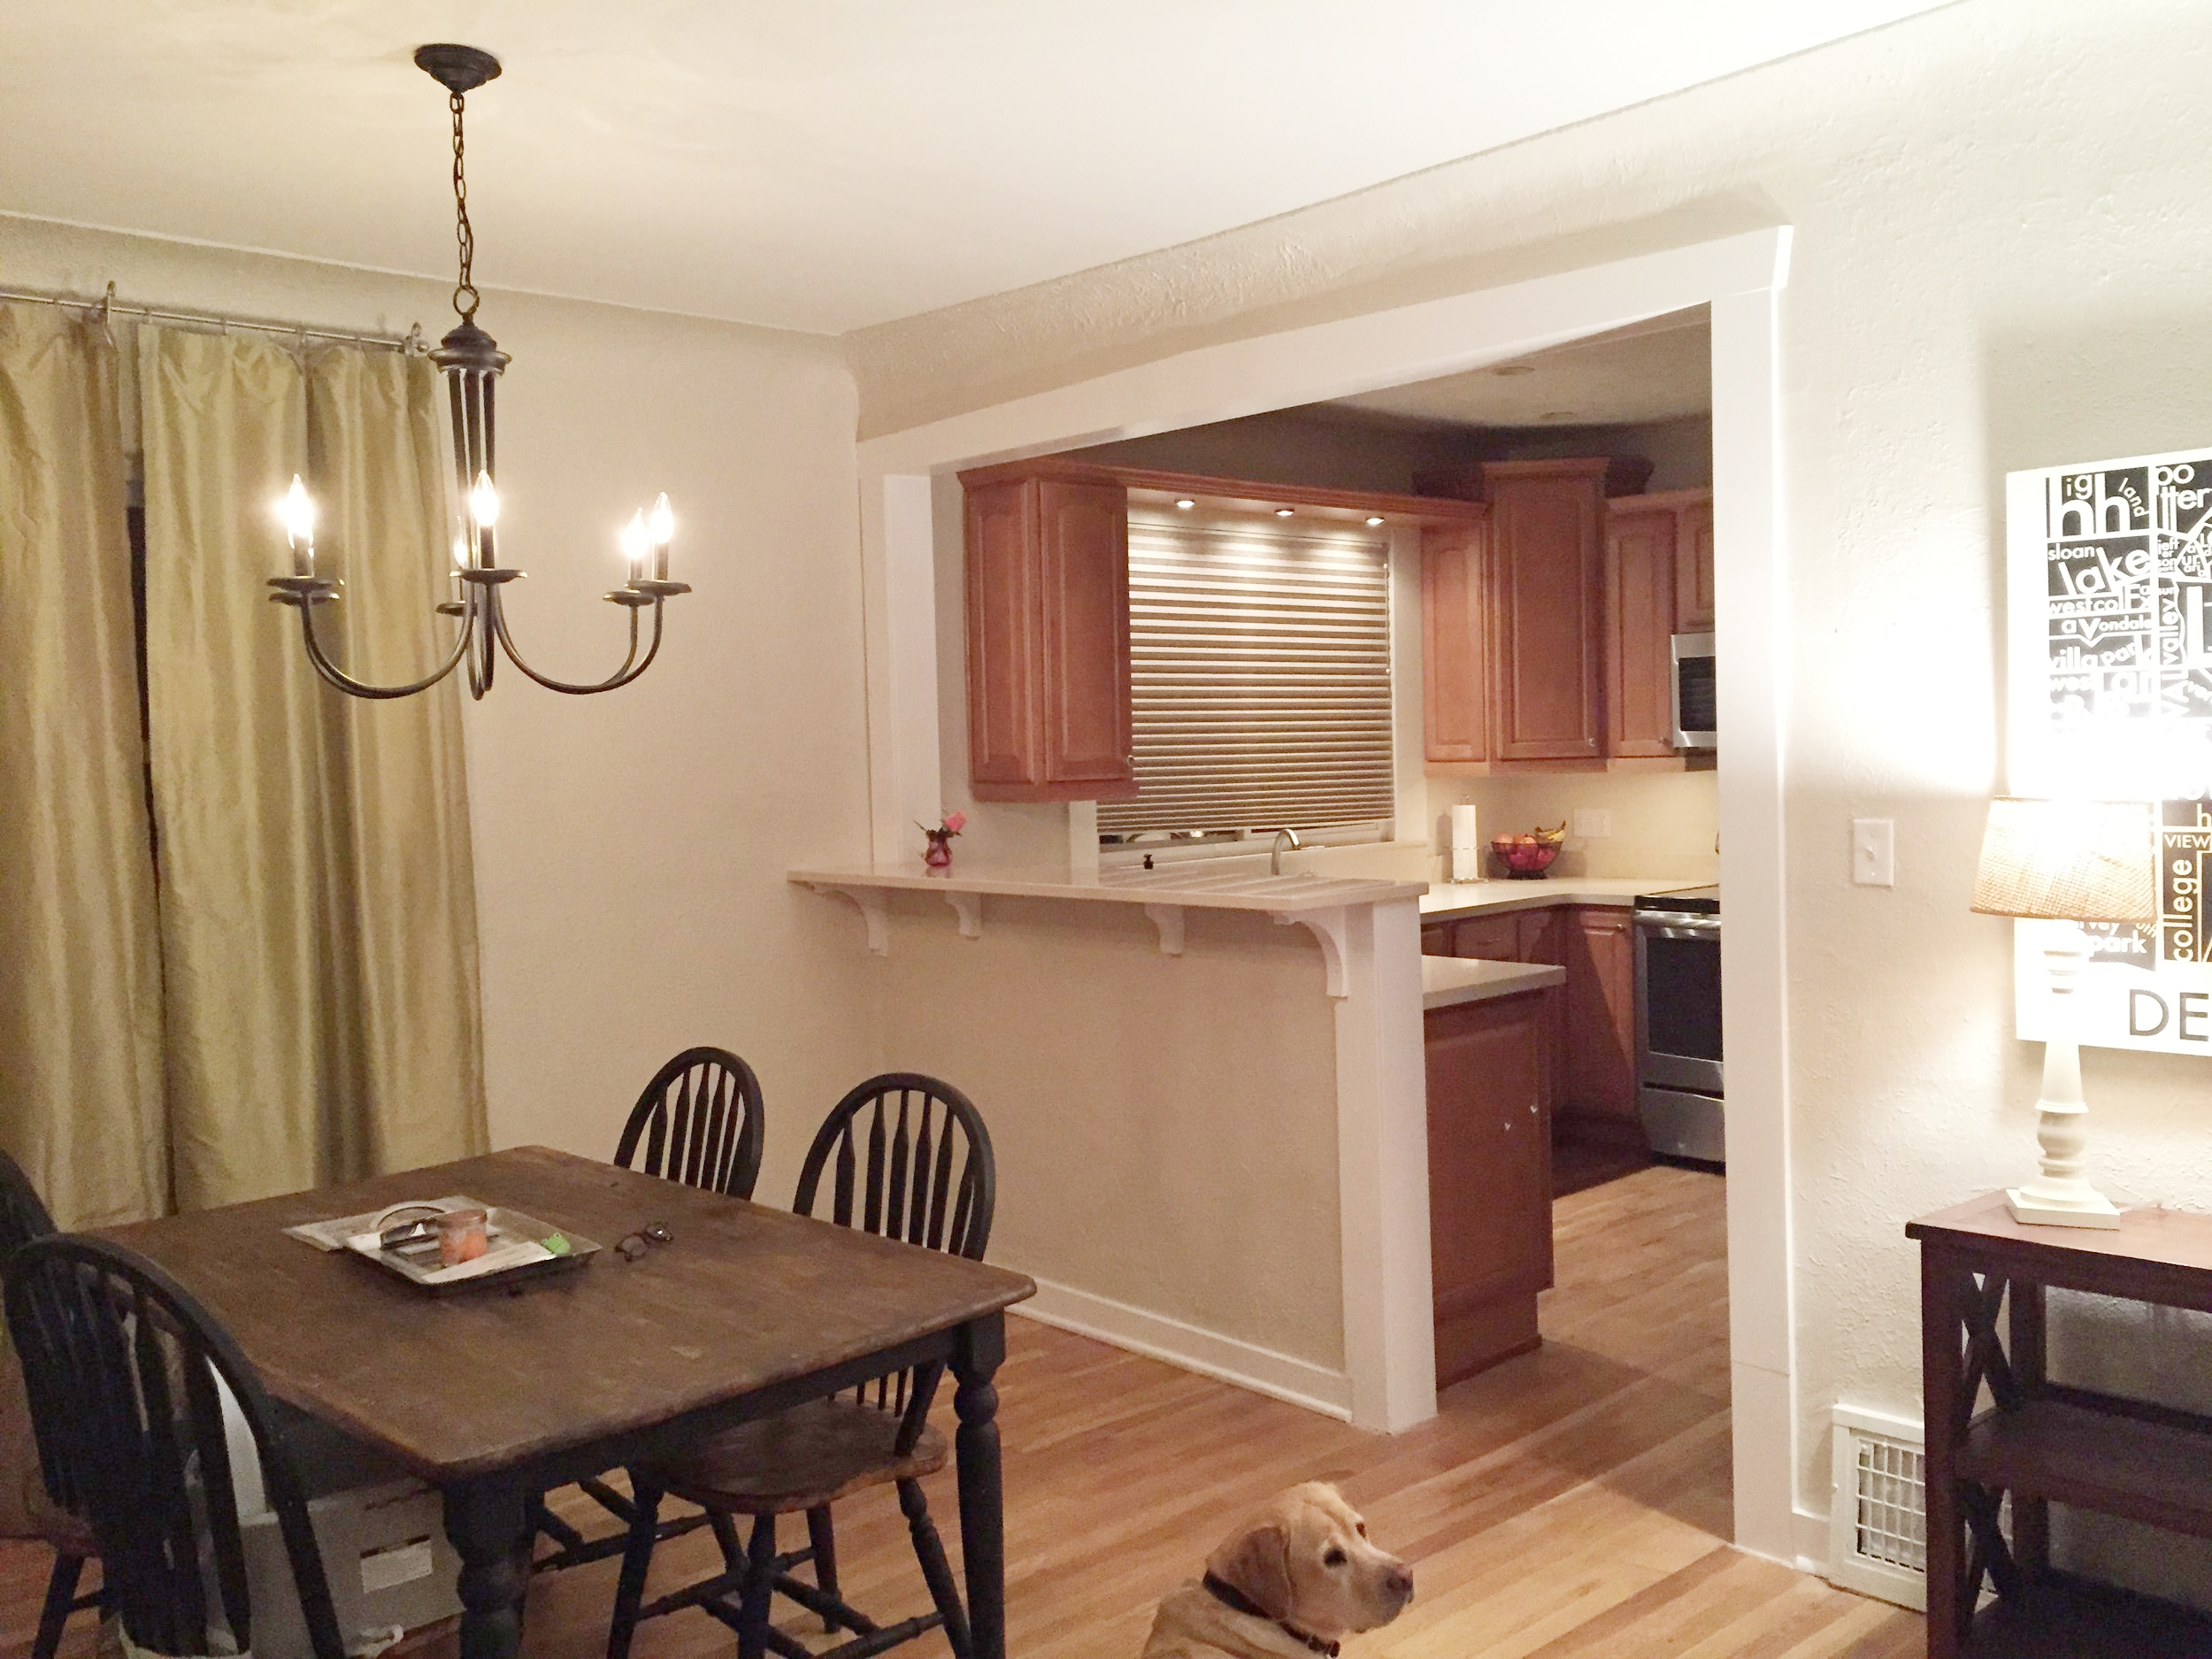 Breakfast bar from kitchen into dining room